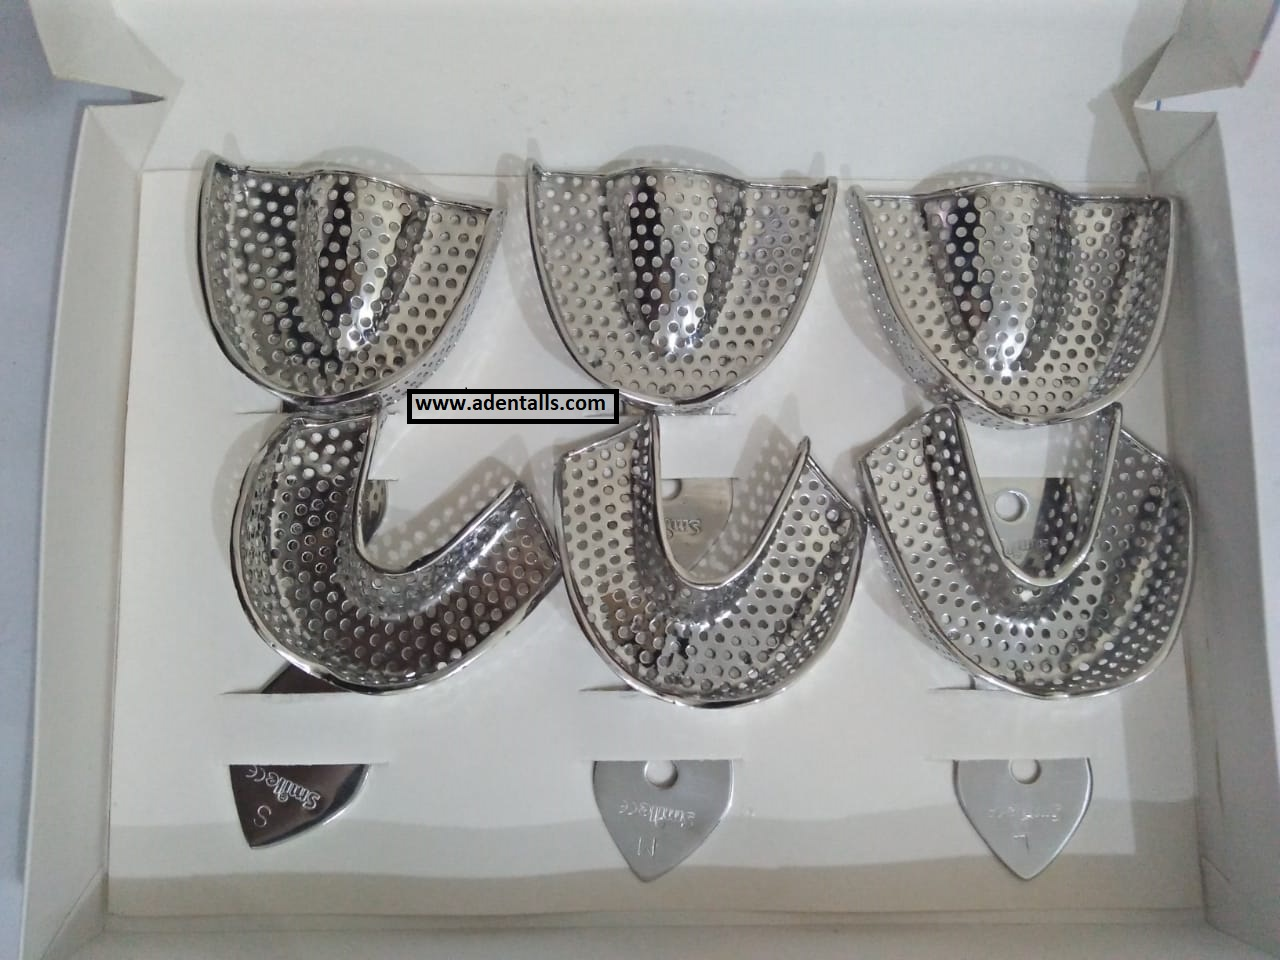 IMPRESSION TRAY STEEL SET